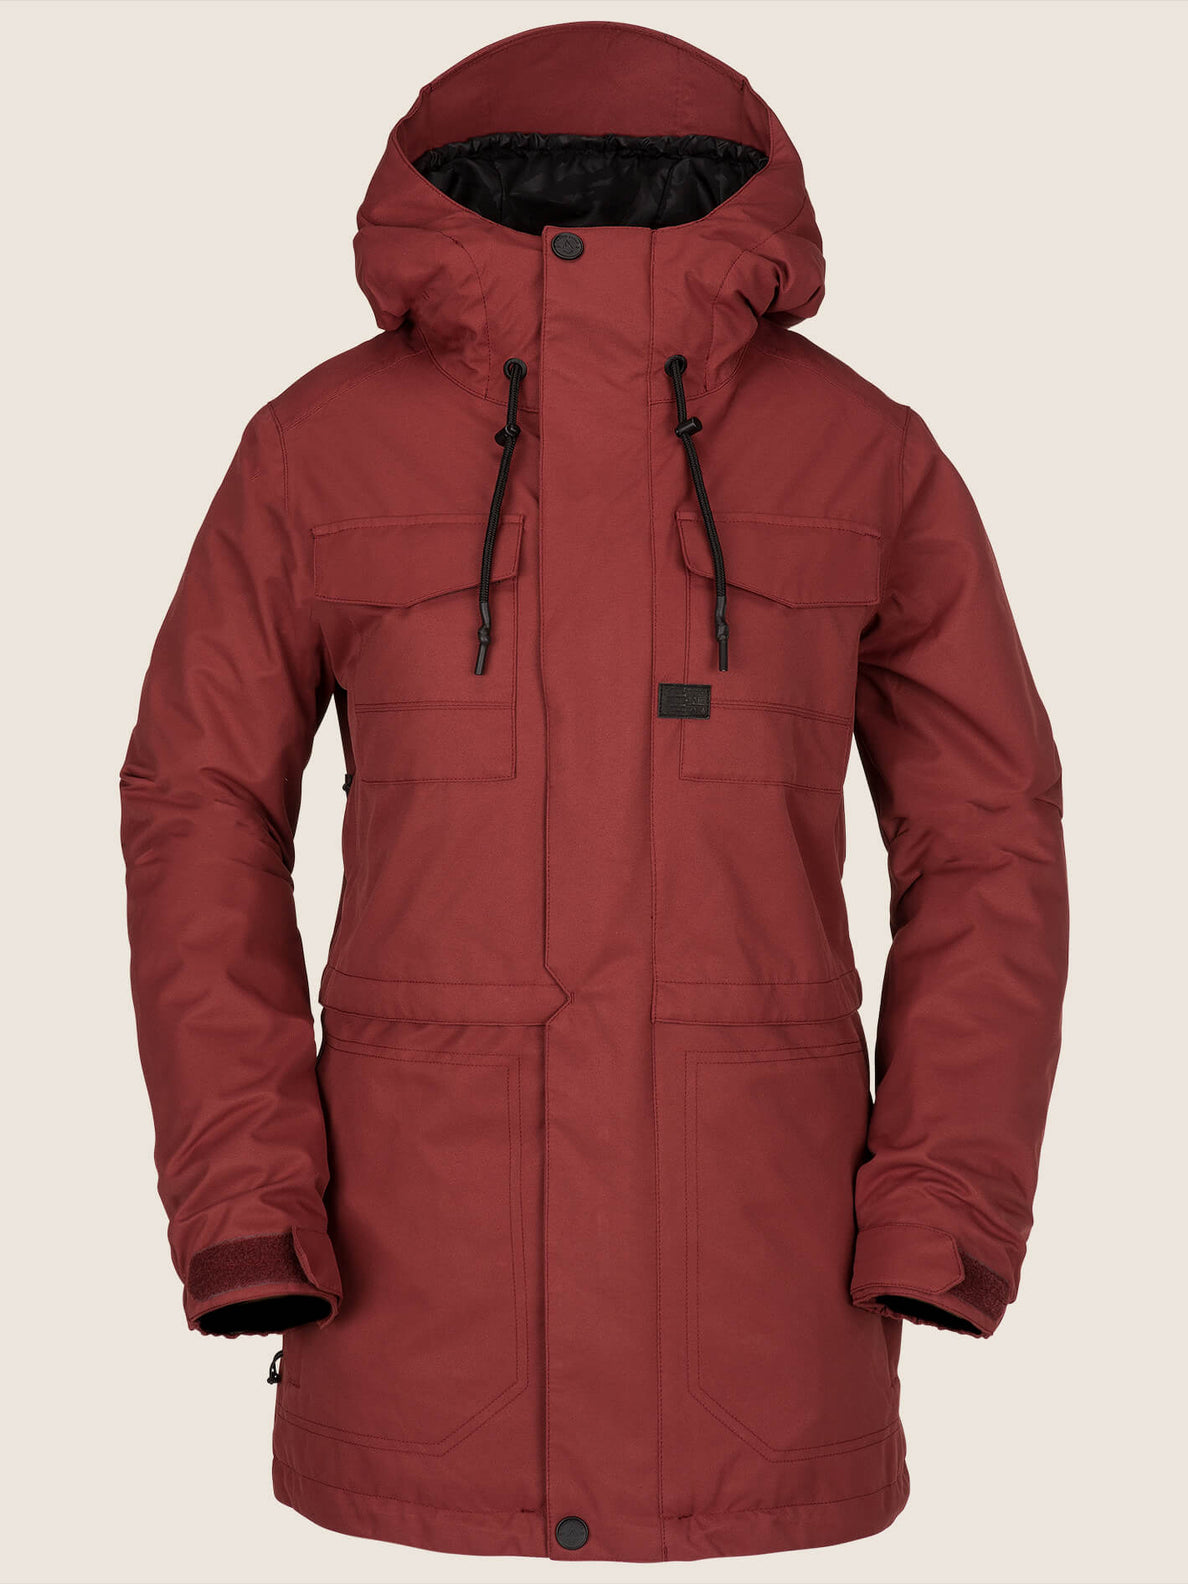 Leeland Jacket In Burnt Red, Front View